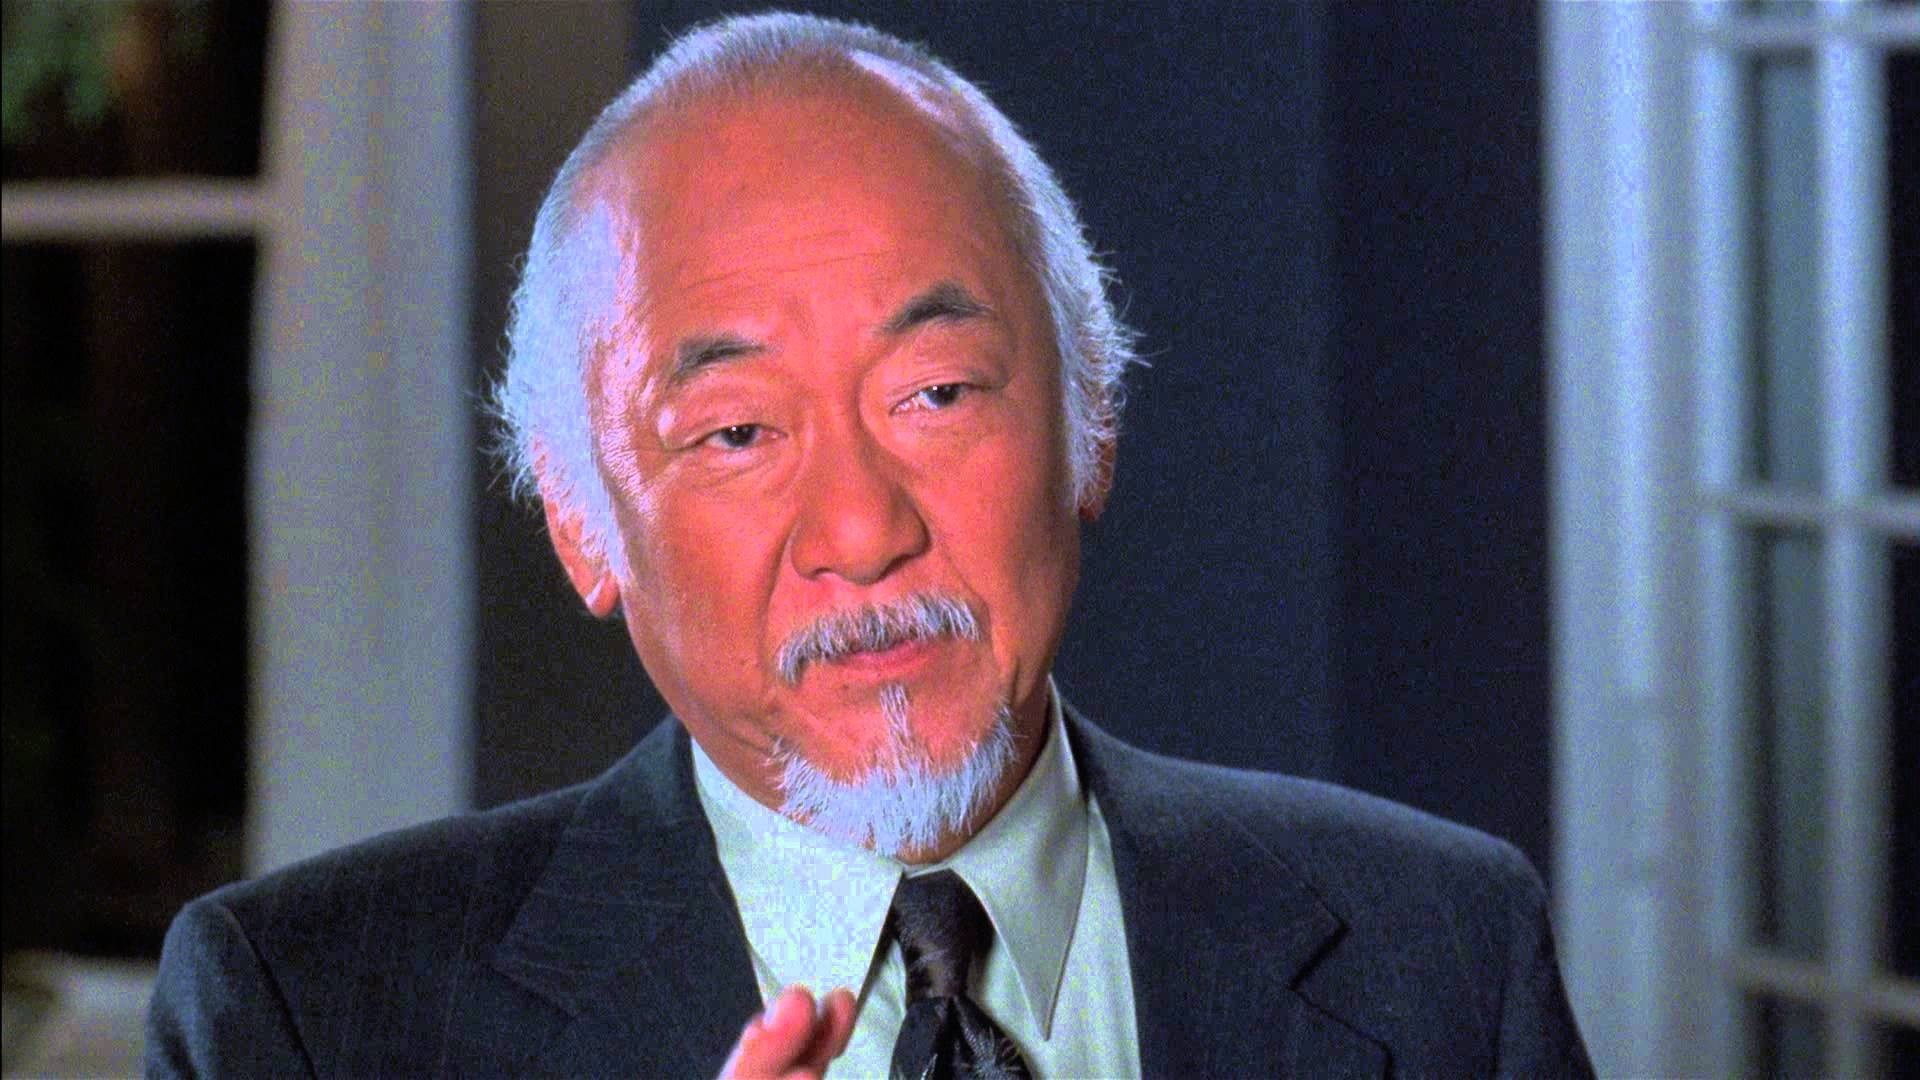 Pat Morita | Known people - famous people news and biographies